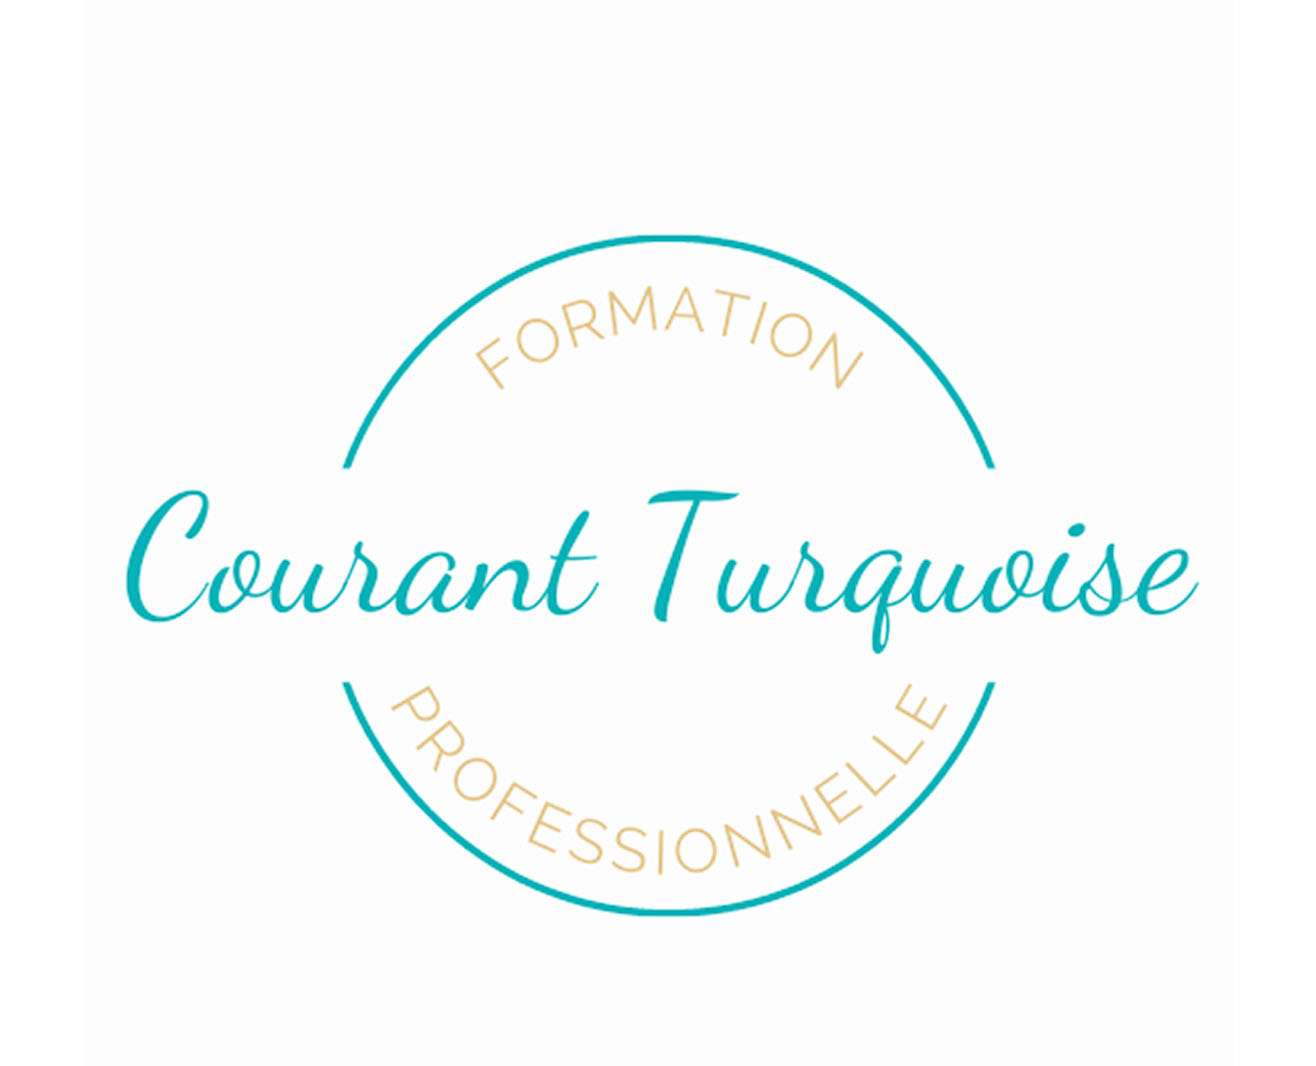 COURANT TURQUOISE